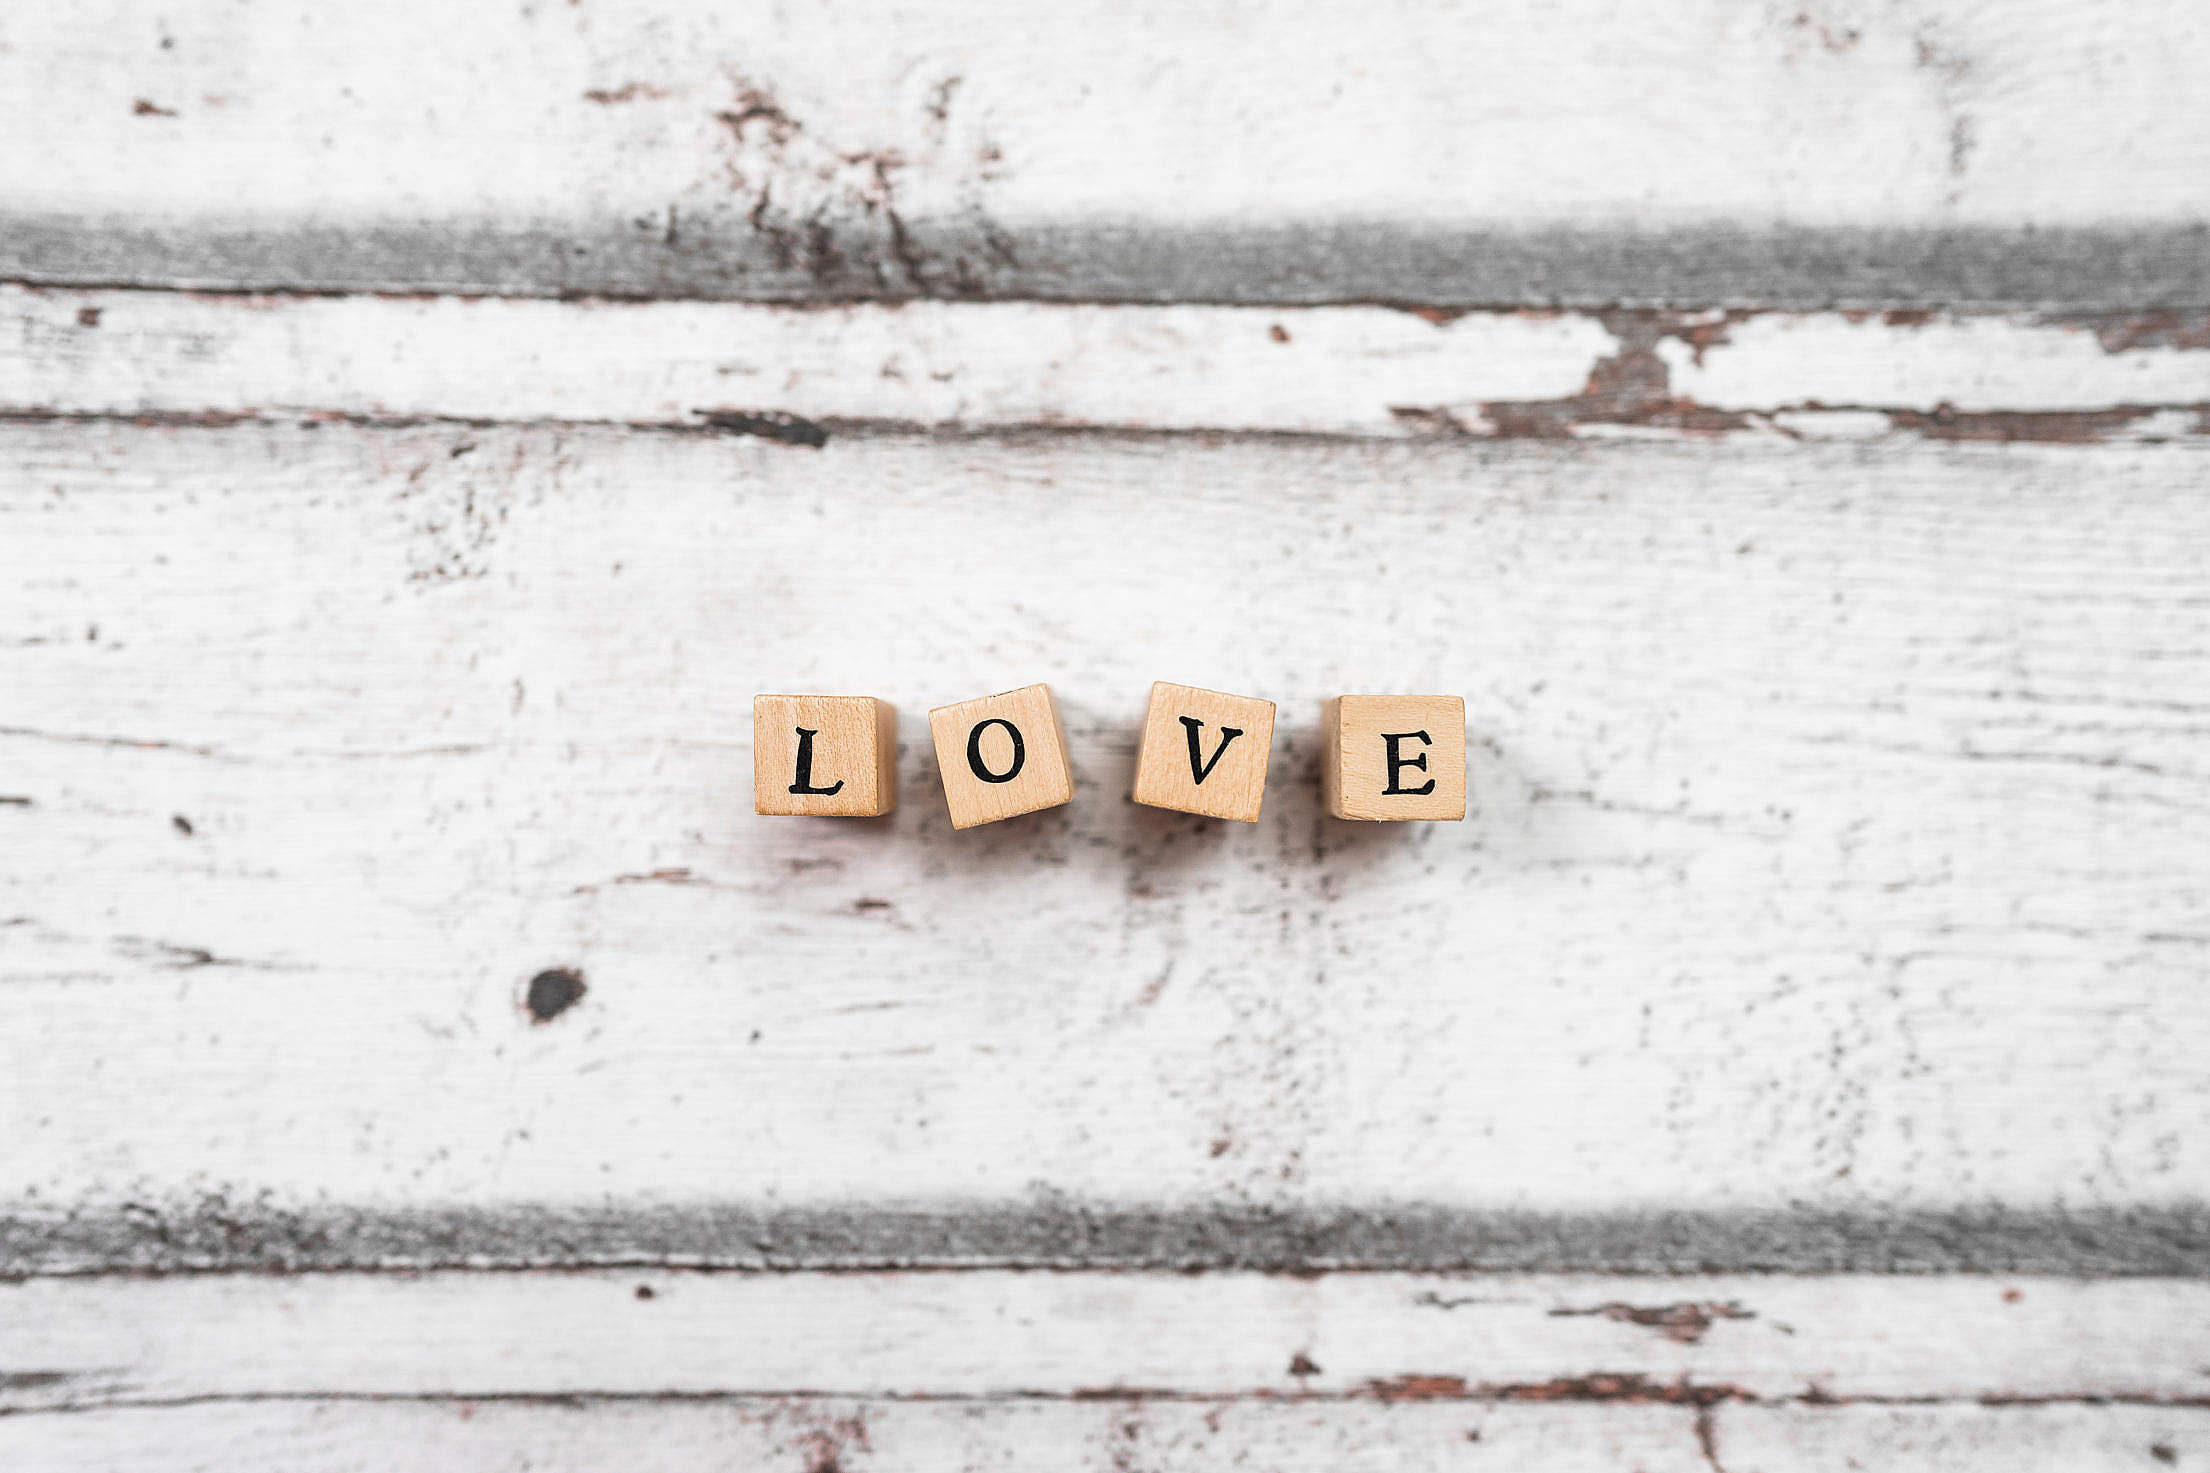 Love Wooden Letters Free Stock Photo